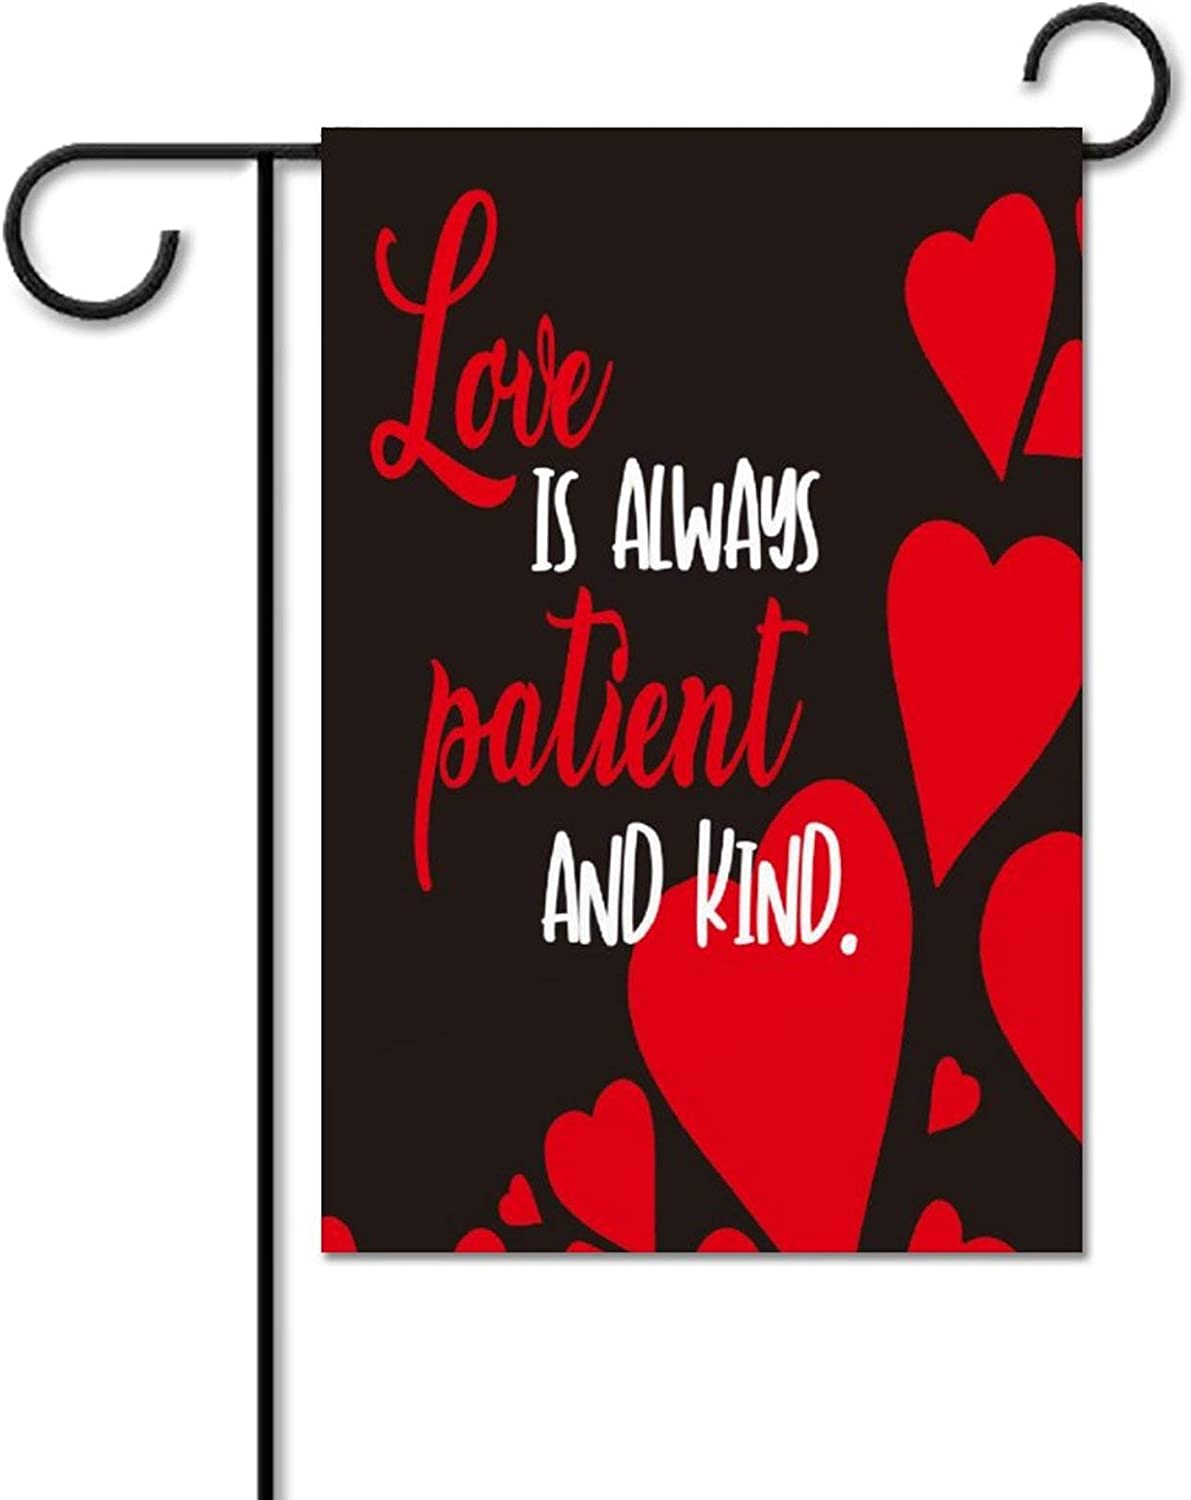 None-brands Valentine's Day Garden Flag Love is Always Patient and Kind Flag, Olive Garden Flag, Secret Garden Flag, Garden Centre Flag, Garden Flag for Outside, Yard Outdoor Decoration